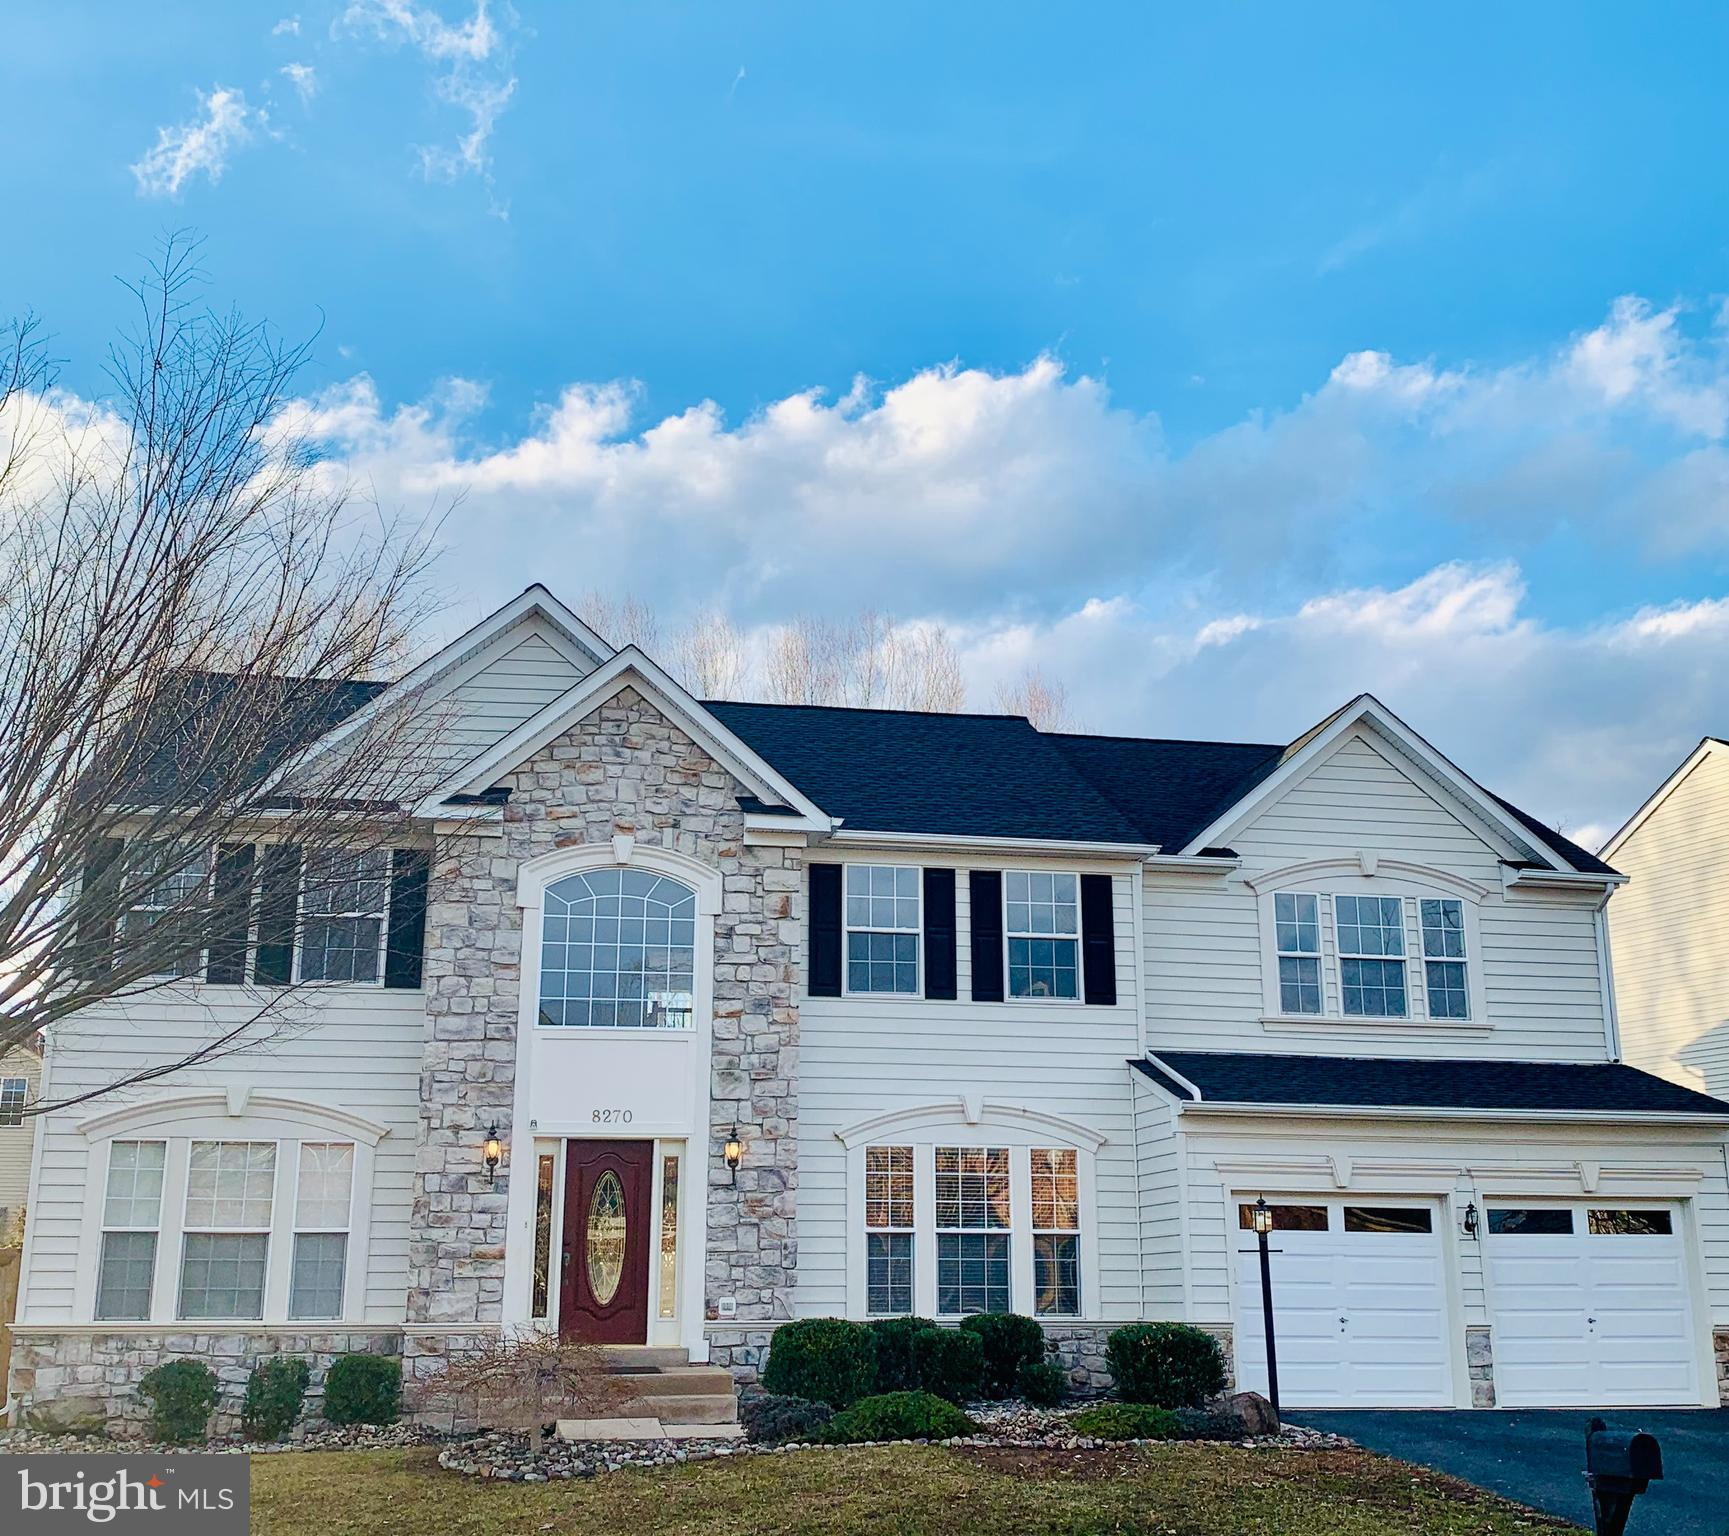 Great Location in Desirable Broad Run Oaks! This Beautiful Colonial is within walking distance of the Promenade at Virginia Gateway which is loaded with shopping, upscale restaurants and entertainment. Only Minutes to I-66, Route 29, OmniRide Commuter Bus Stop and the Limestone Drive Commuter Parking Lot. The VRE Train Station is less than 6 miles away. The house is great for entertaining and has real hardwoods throughout the Main Level. You enter an Elegant 2 Story Foyer to a large Office on the right. On the left is a Formal LR and Sep DR that leads to a Spacious Kitchen with granite countertops, a large island and double ovens. The Family Room has a fireplace and overlooks the fenced-in backyard. Wooded views from the deck in back will offer a perfect place to enjoy the upcoming warmer weather. There is Brand New carpeting on the Upper Level along with 4 Bedrooms and the Laundry. The large Primary Bedroom has a tray ceiling, separate sitting room, walk-in closet and luxury bath with soaking tub and separate shower. One of the Extra Bedrooms on the Upper Level has its own Private Bathroom, with the Other 2 Bedrooms sharing a Jack and Jill Bathroom. The basement is finished with an extra room/den, 2nd laundry and full bath.  Rear basement exit with walk-up stairs. Storage in the Garage. Roof replaced in 2021. Amenities Include: Clubhouse*Outdoor Pool*Tennis Court*Basketball Court*Tot Lots*Trash & Snow Removal.  This Home is Ready For Immediate Delivery!